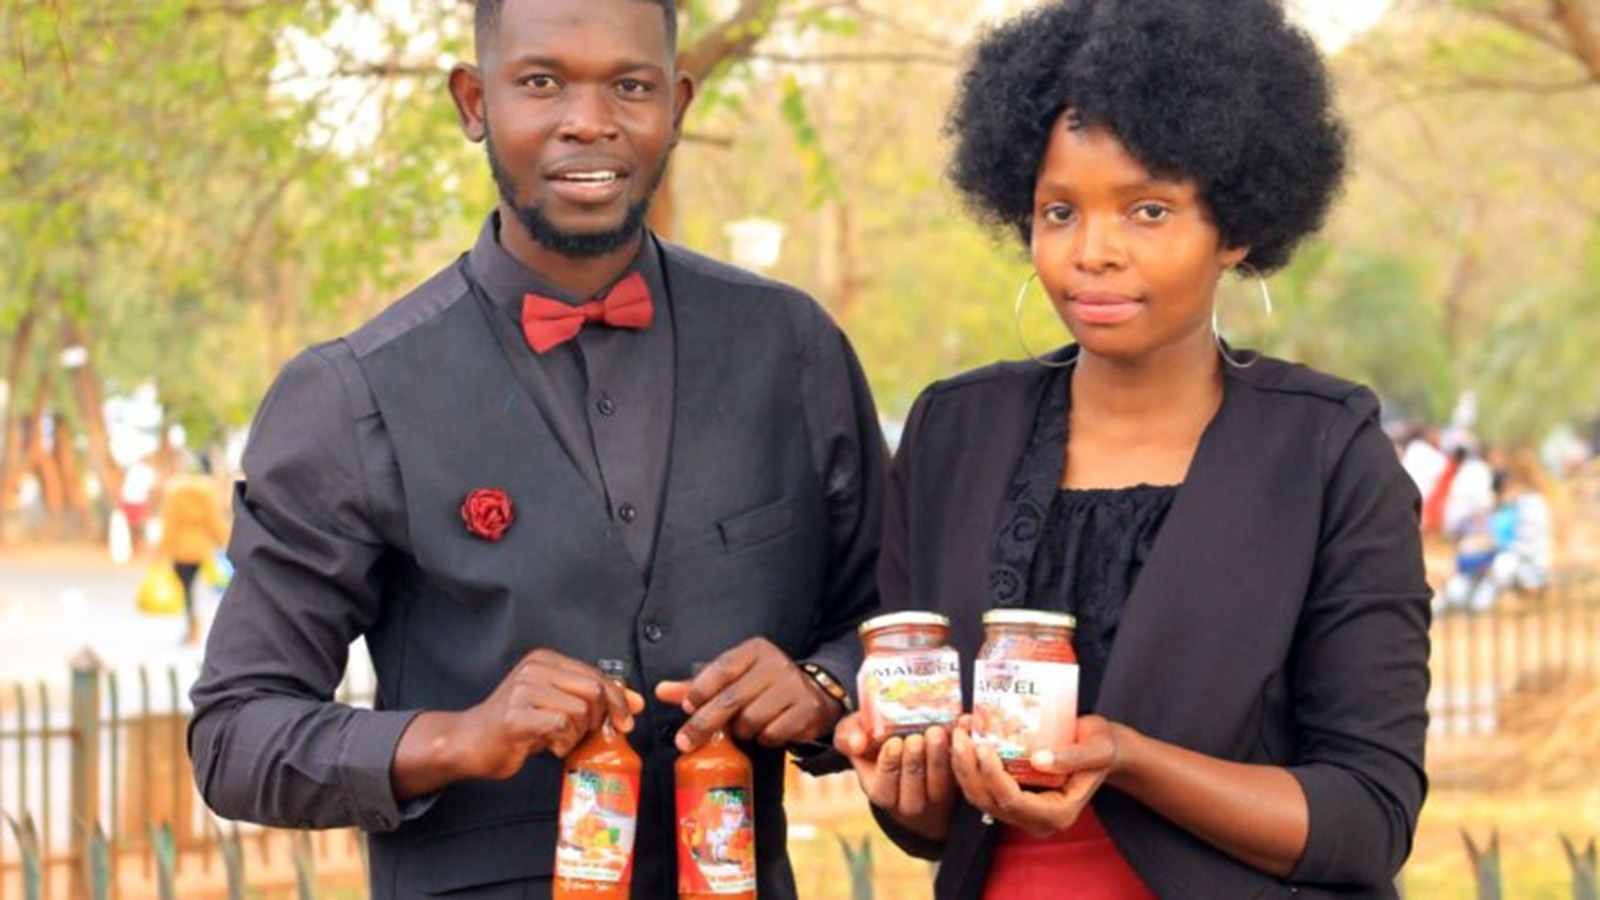 Phathutshedzo Madula and Mpfariseni Rasimphi are the owners of Marvel Chilli Sauce producing three products, including tomato jam, fruits jam and vegetable atchaar sauces. Photo: Supplied